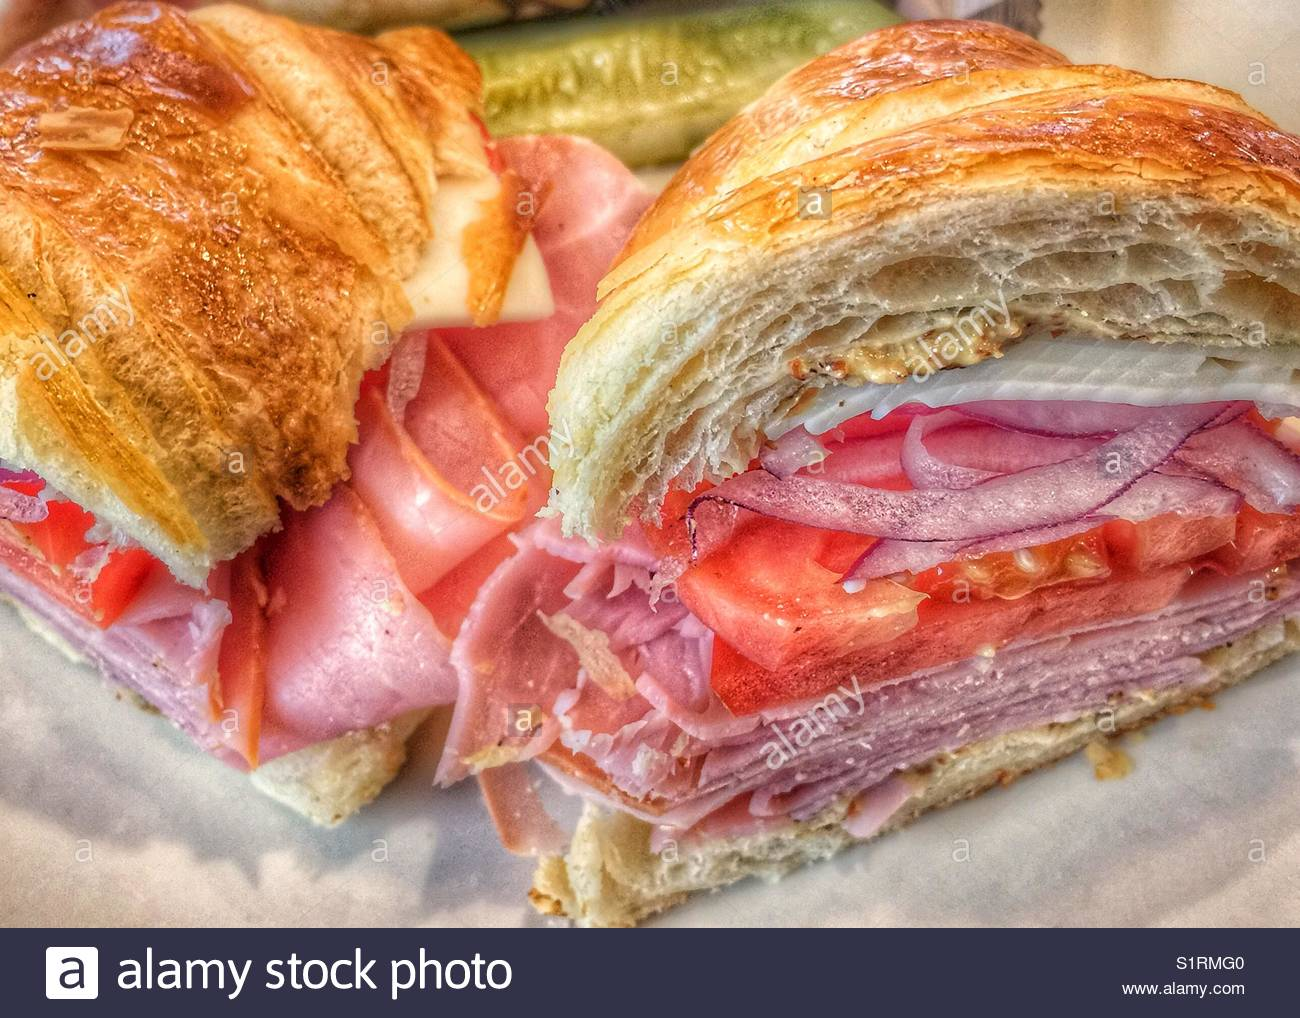 Ham and Swiss cheese on a croissant with mustard tomatoes and red onions sliced in half on a plate - Stock Image